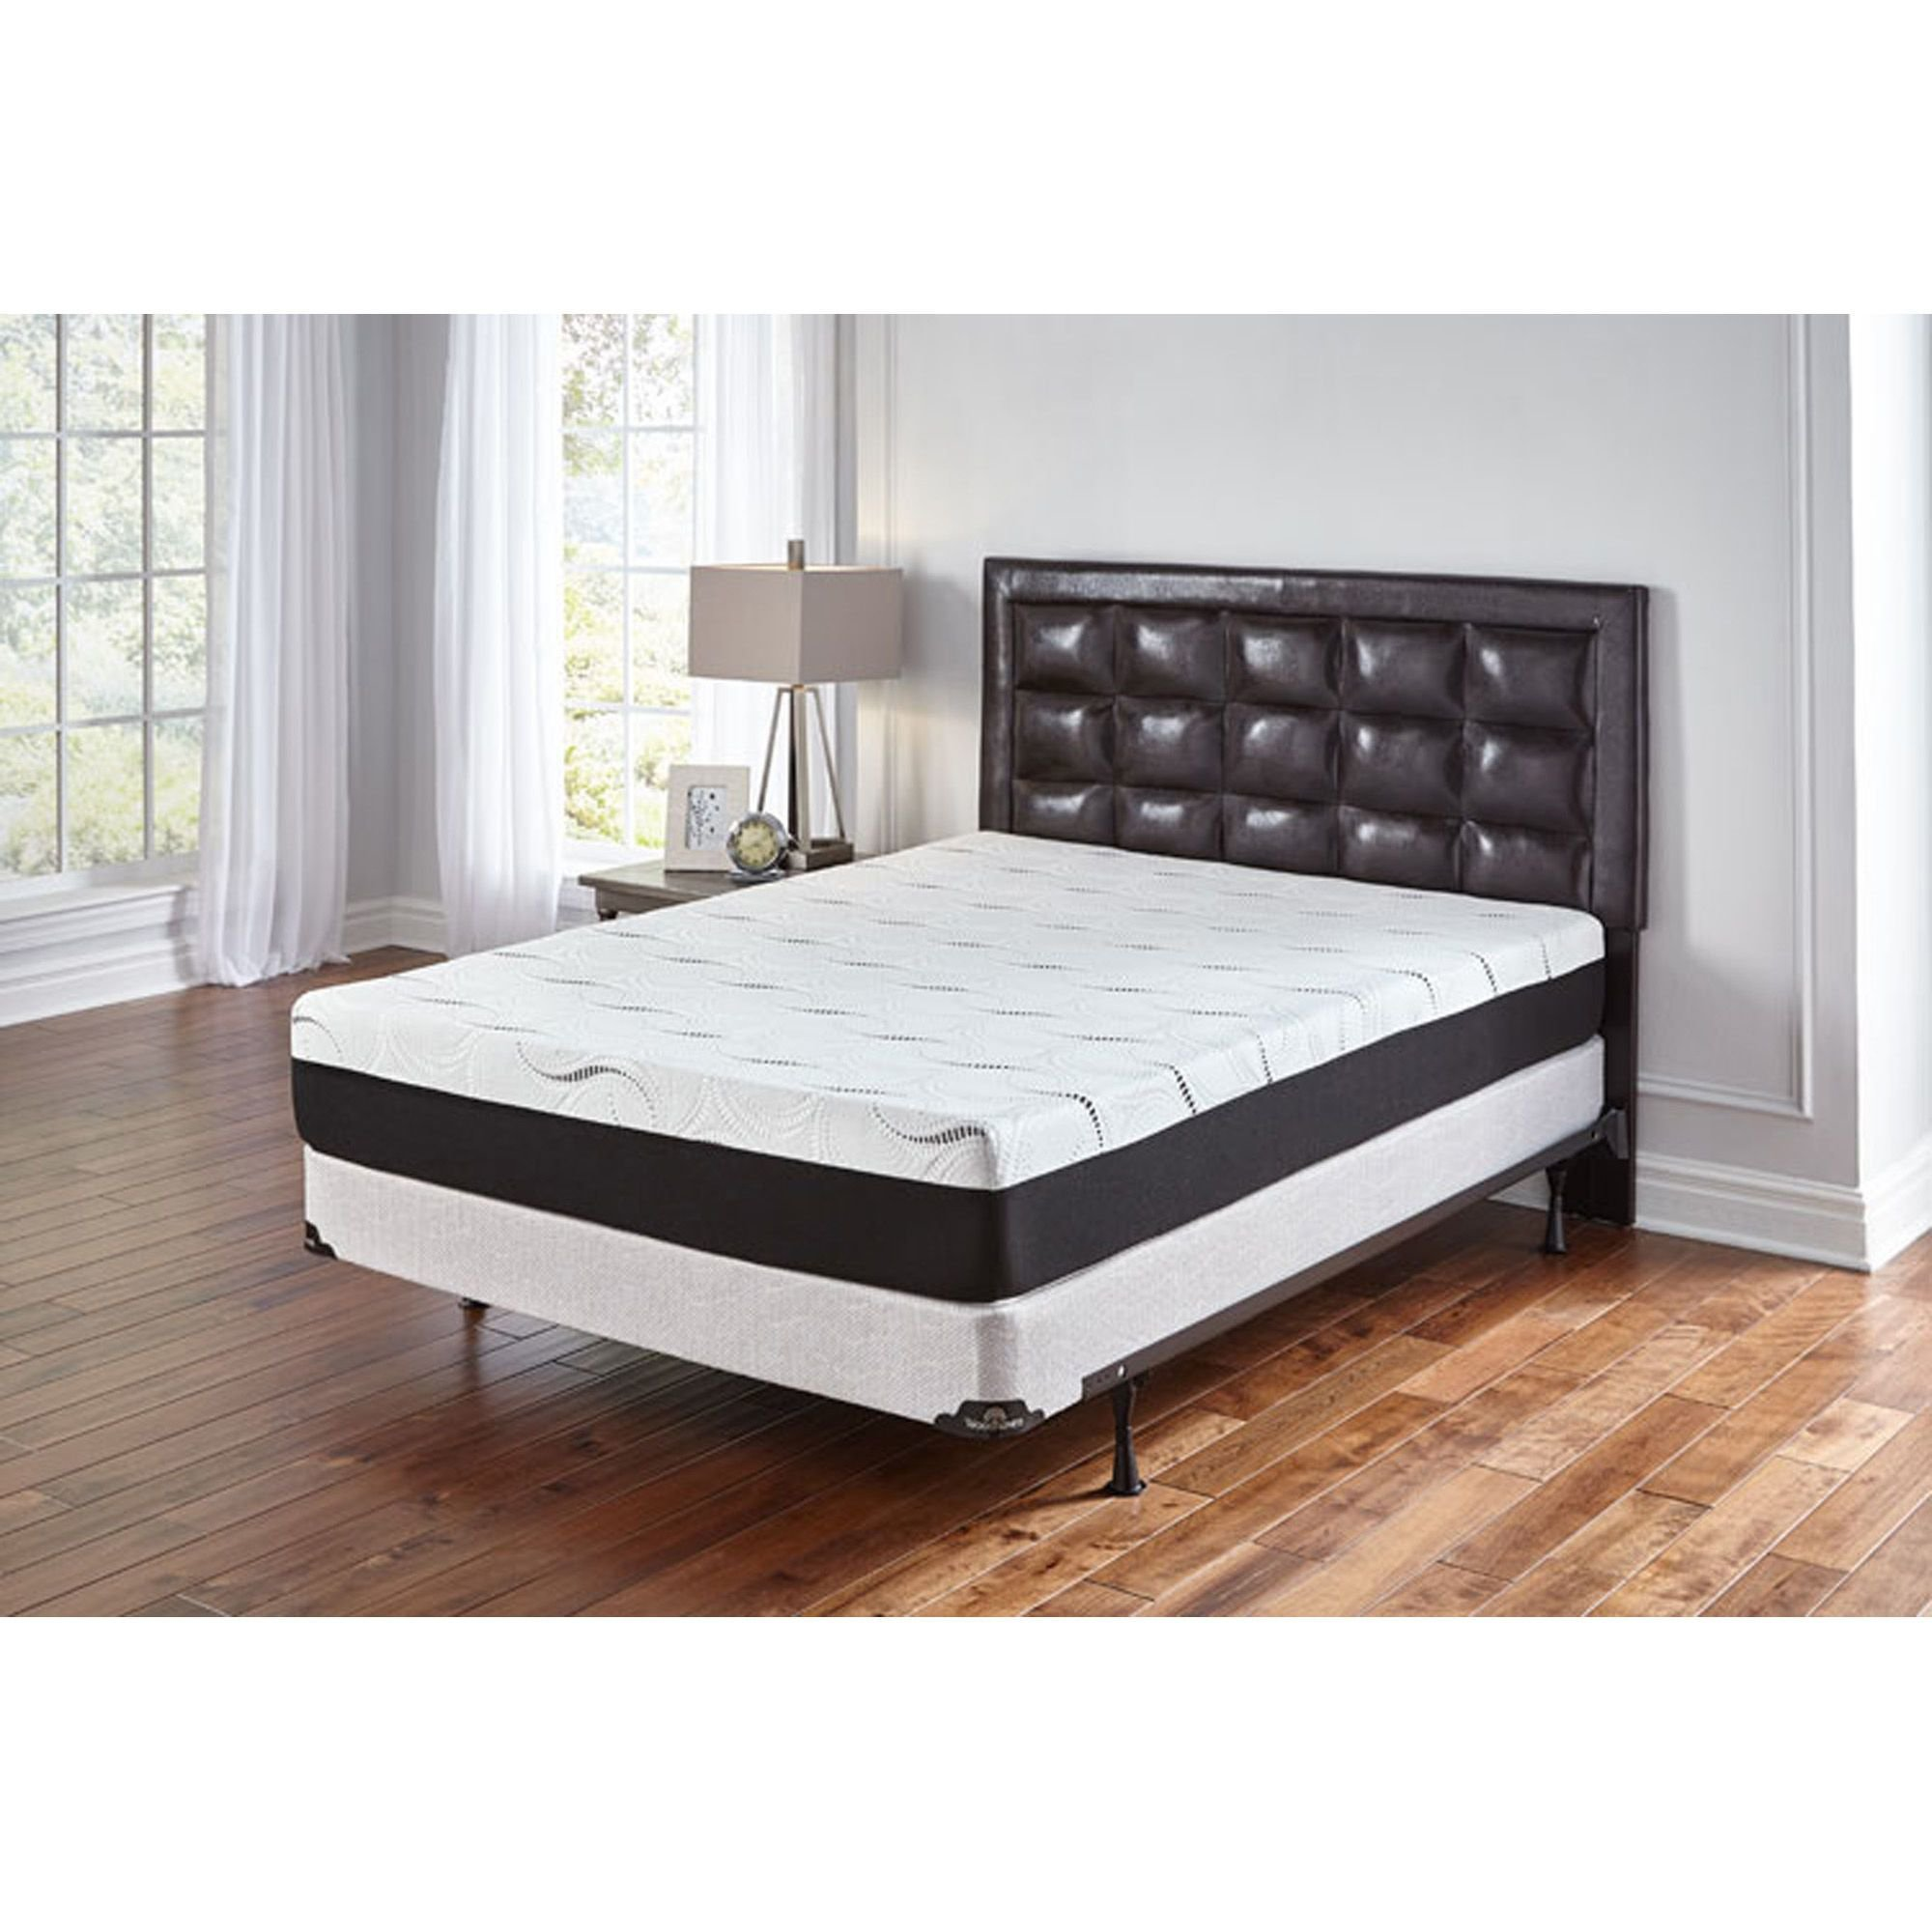 Best Bedroom Sets With Mattress And Box Spring Included Home Plan With Pictures